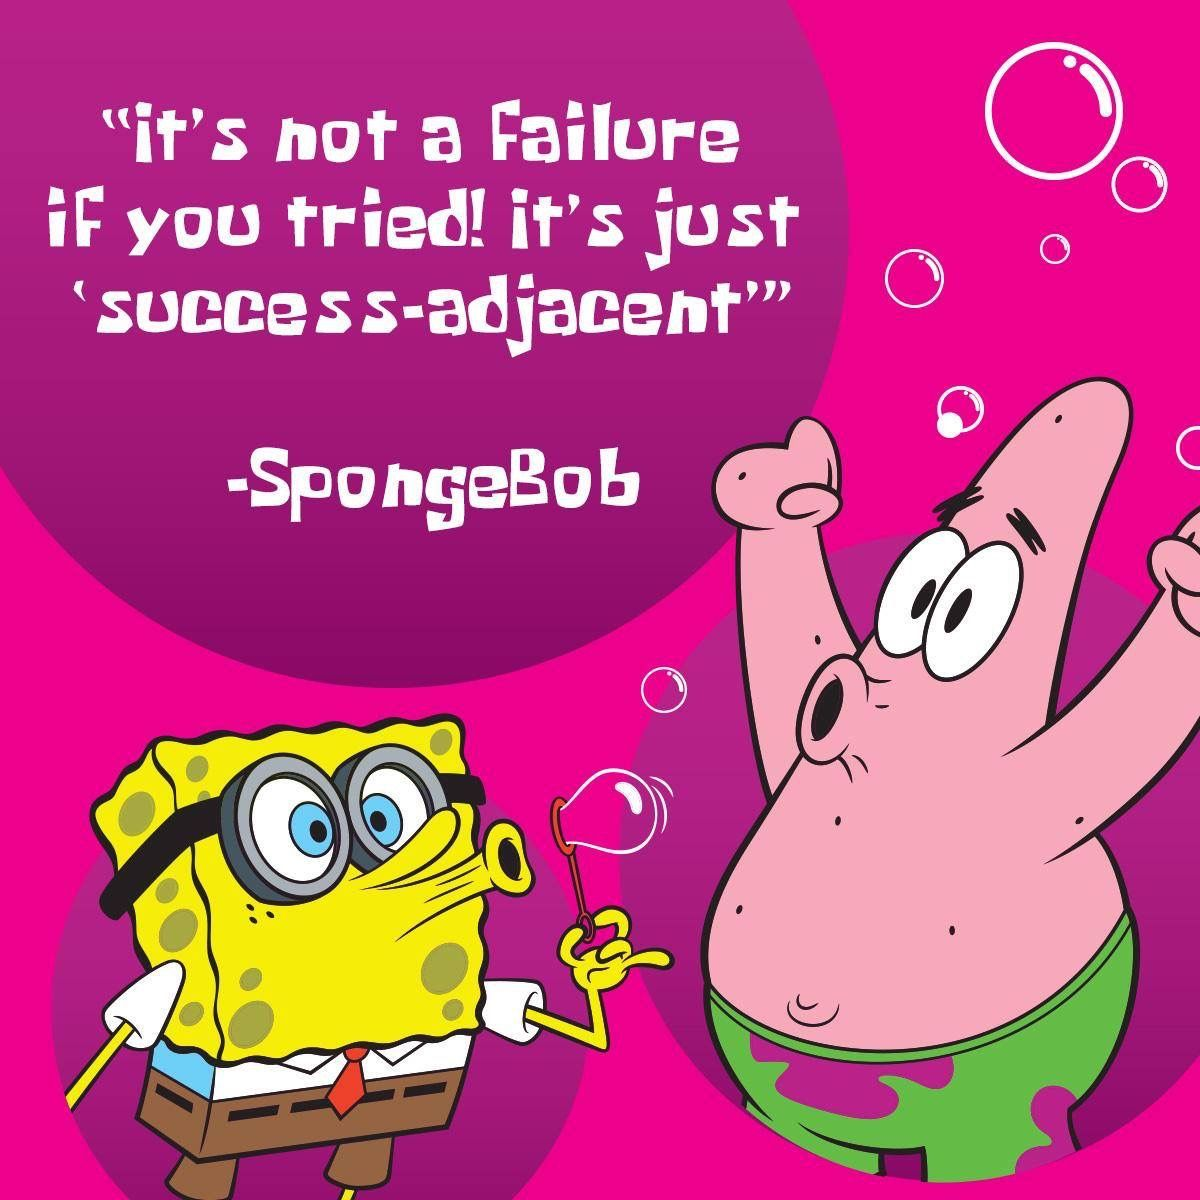 Pin By Gina Spagnuolo On Spongebob Motivational Quotes Today Quotes Motivational Quotes For Working Out